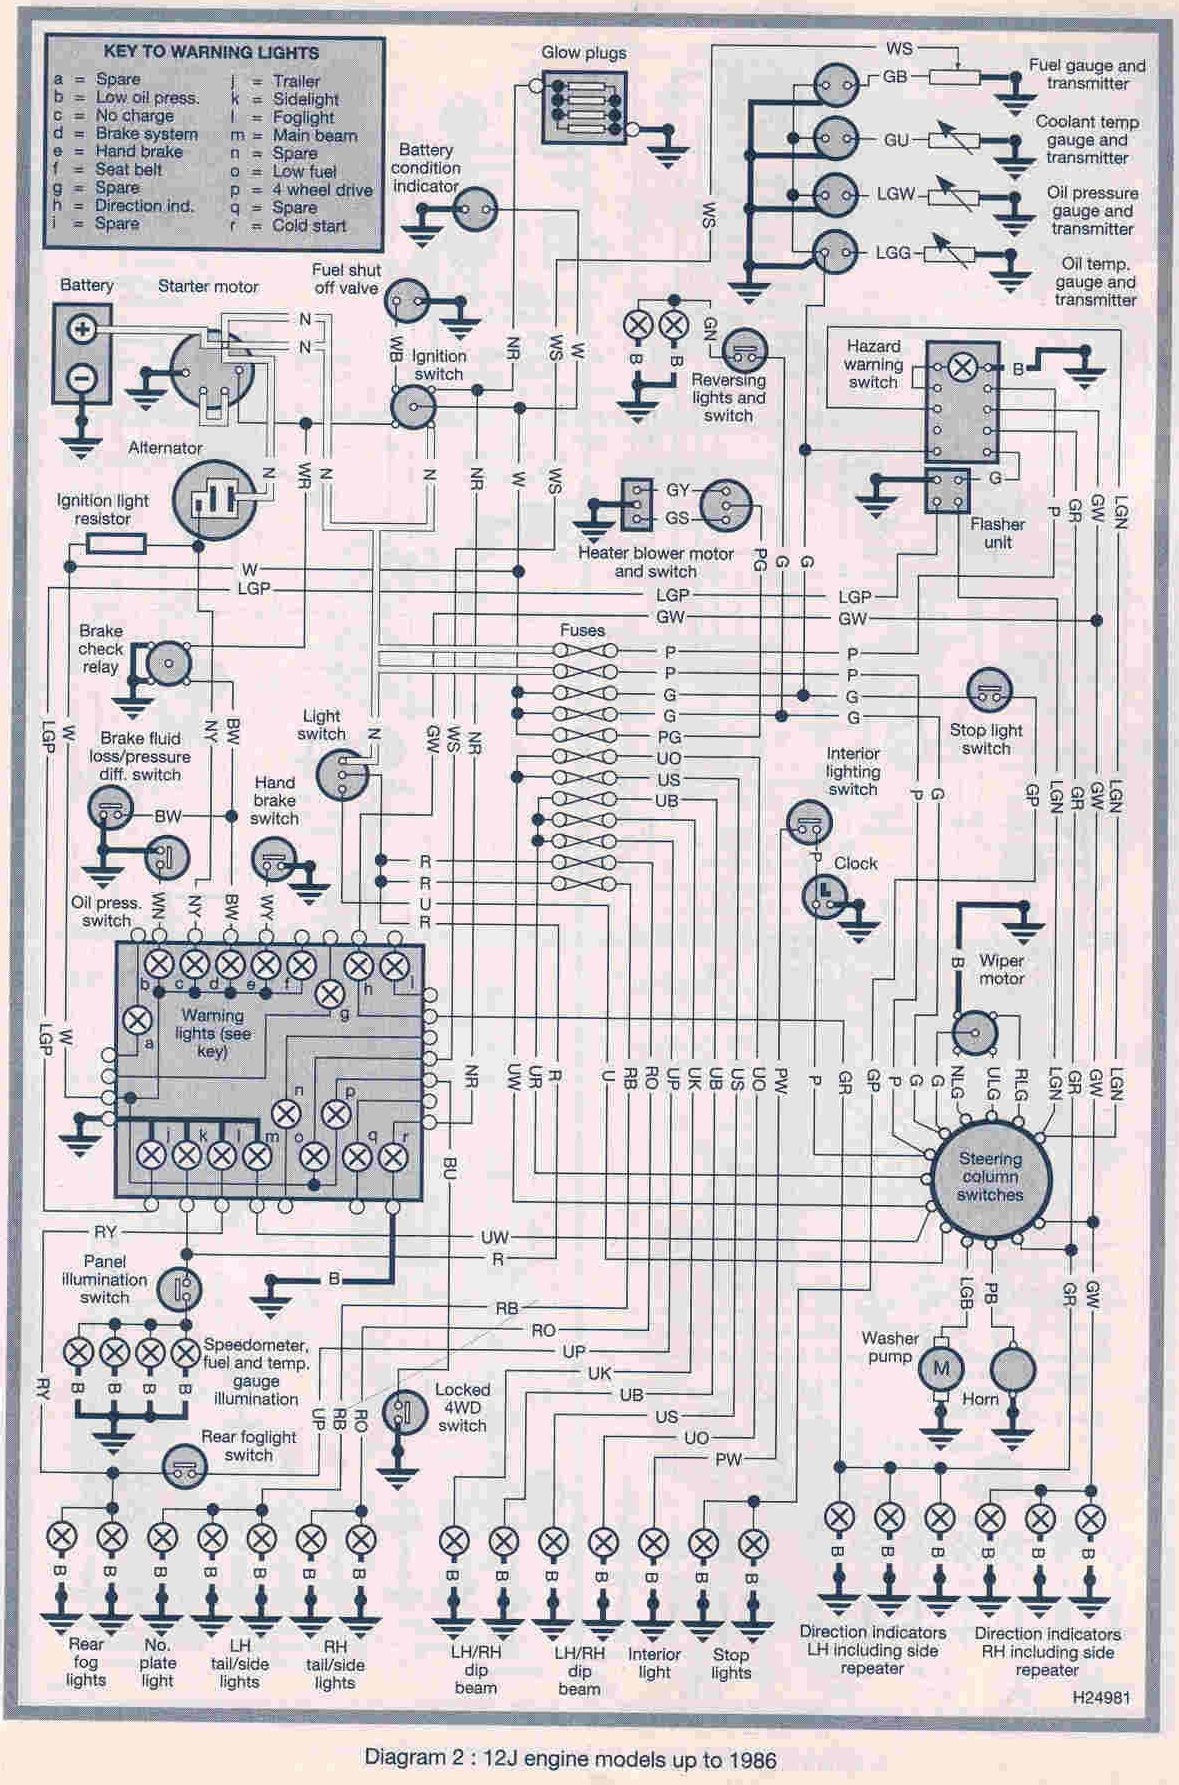 Puma 300 Wiring Diagram Library Land Rover Schematics Help Requested With 1990 V8 Loom Diagrams Defender Forum Rh Forums Lr4x4 Com